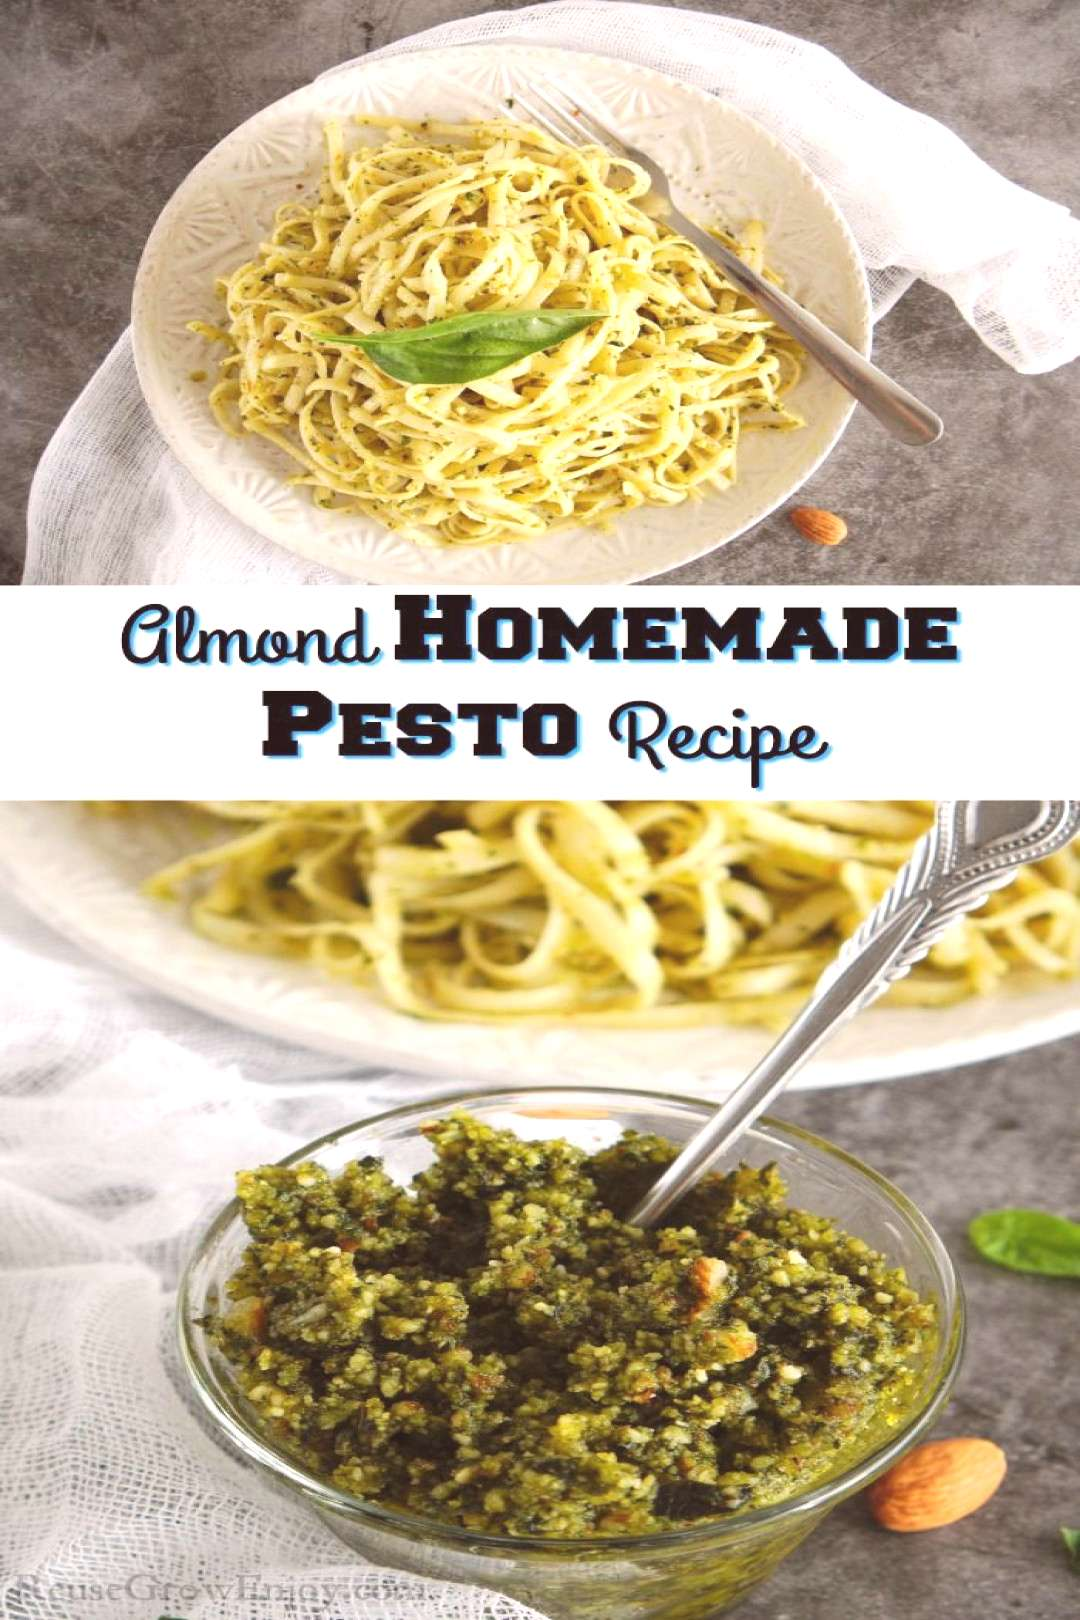 Almond Homemade Pesto Recipe Making this almond homemade pesto recipe is about as simple as it gets